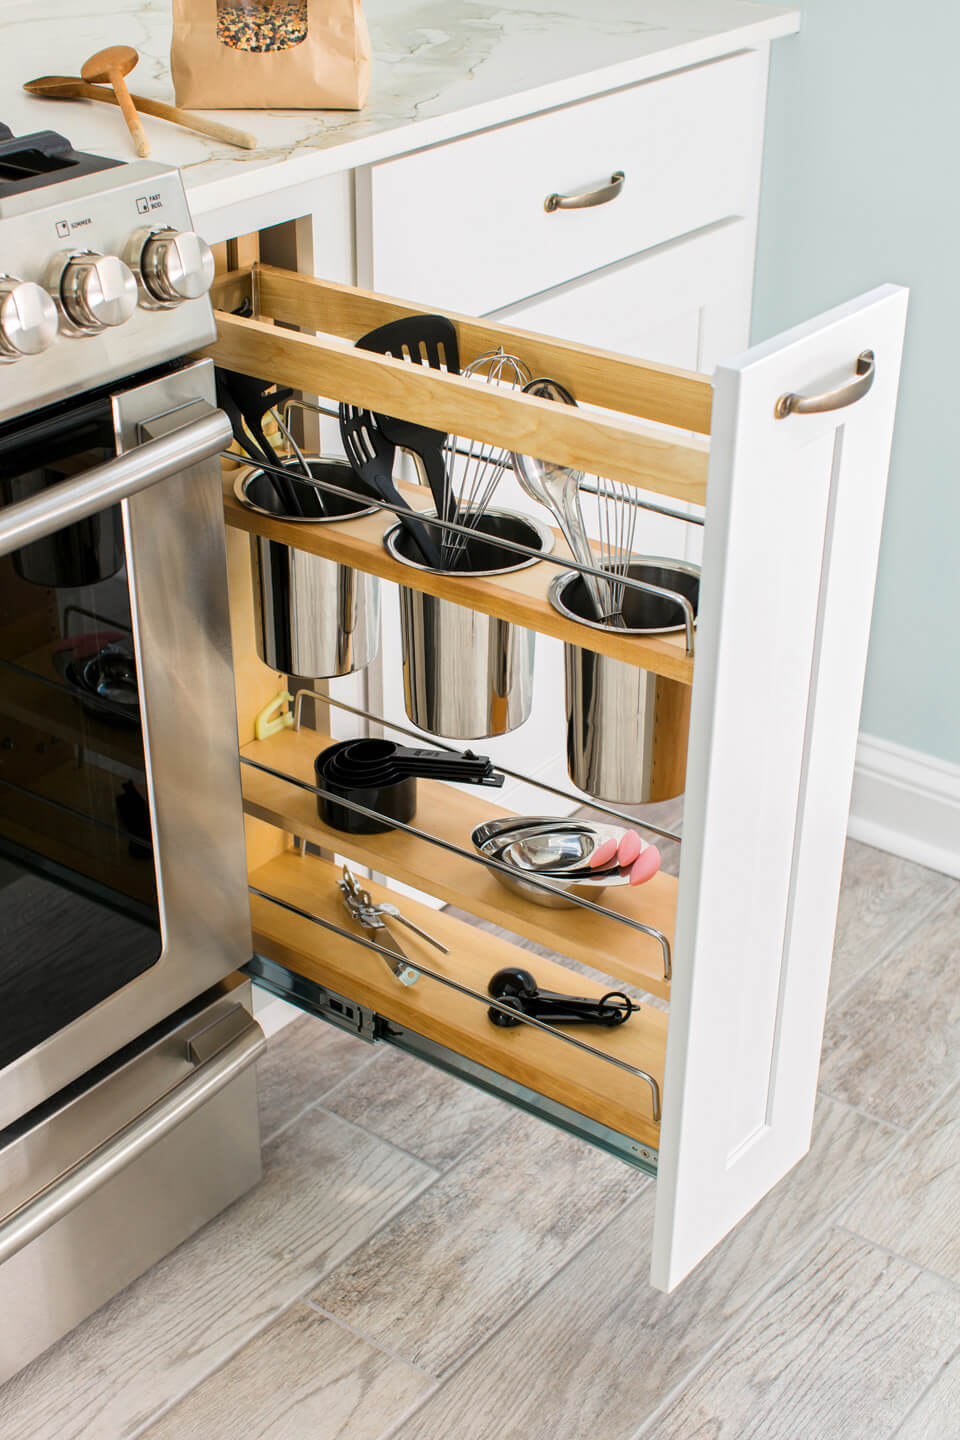 35 smart diy kitchen storage ideas - a green hand